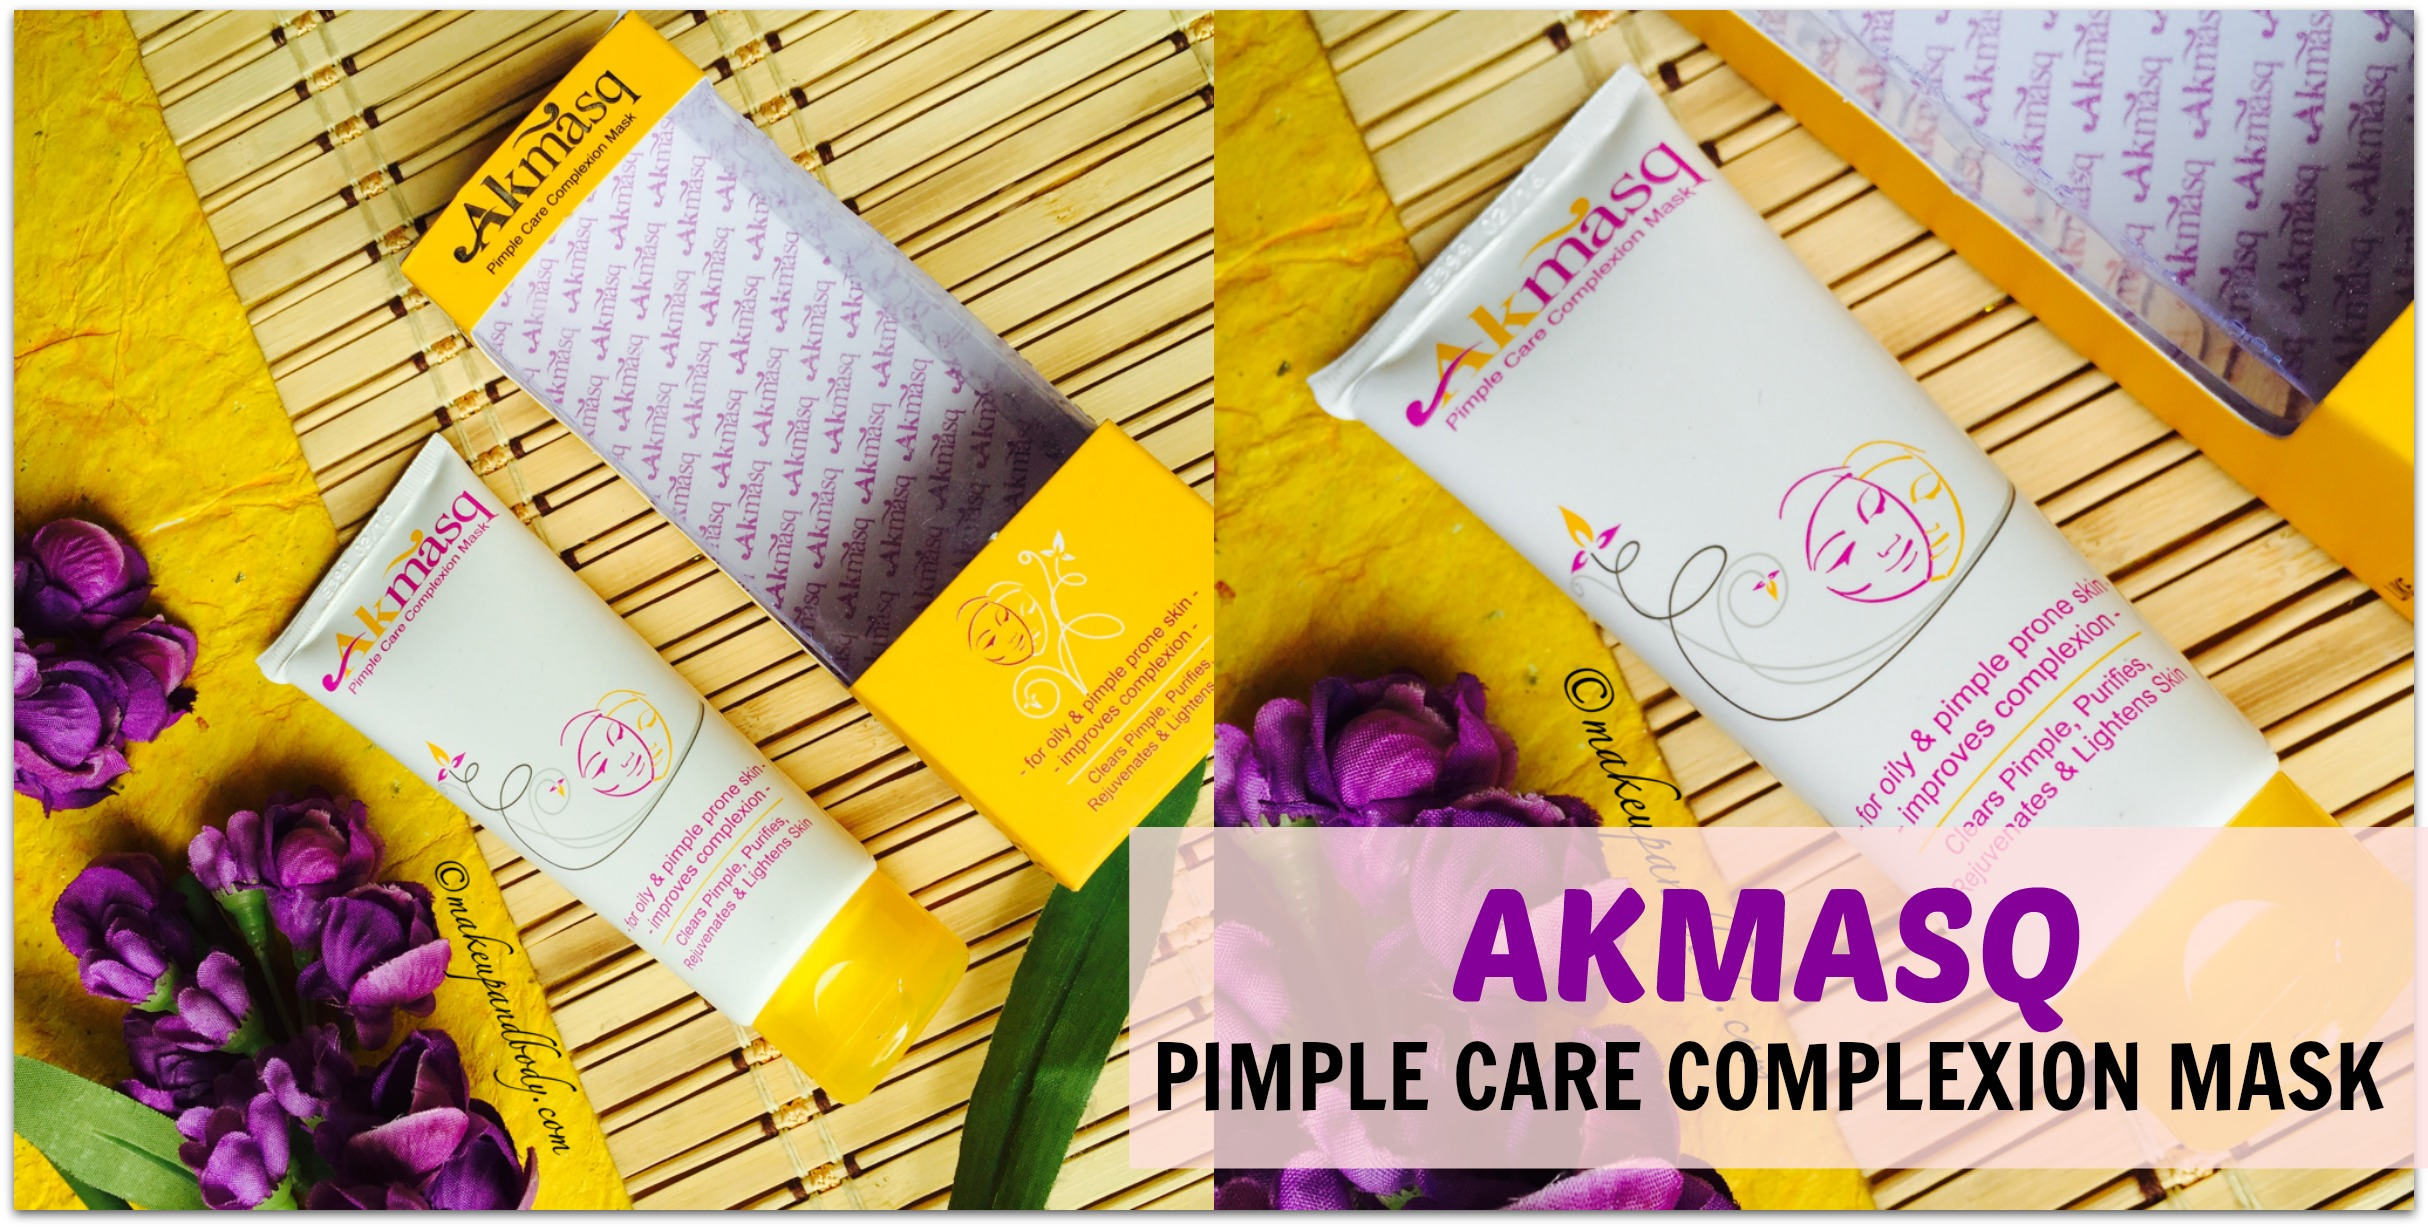 Akmasq Pimple Care Complexion Mask Review Makeup And